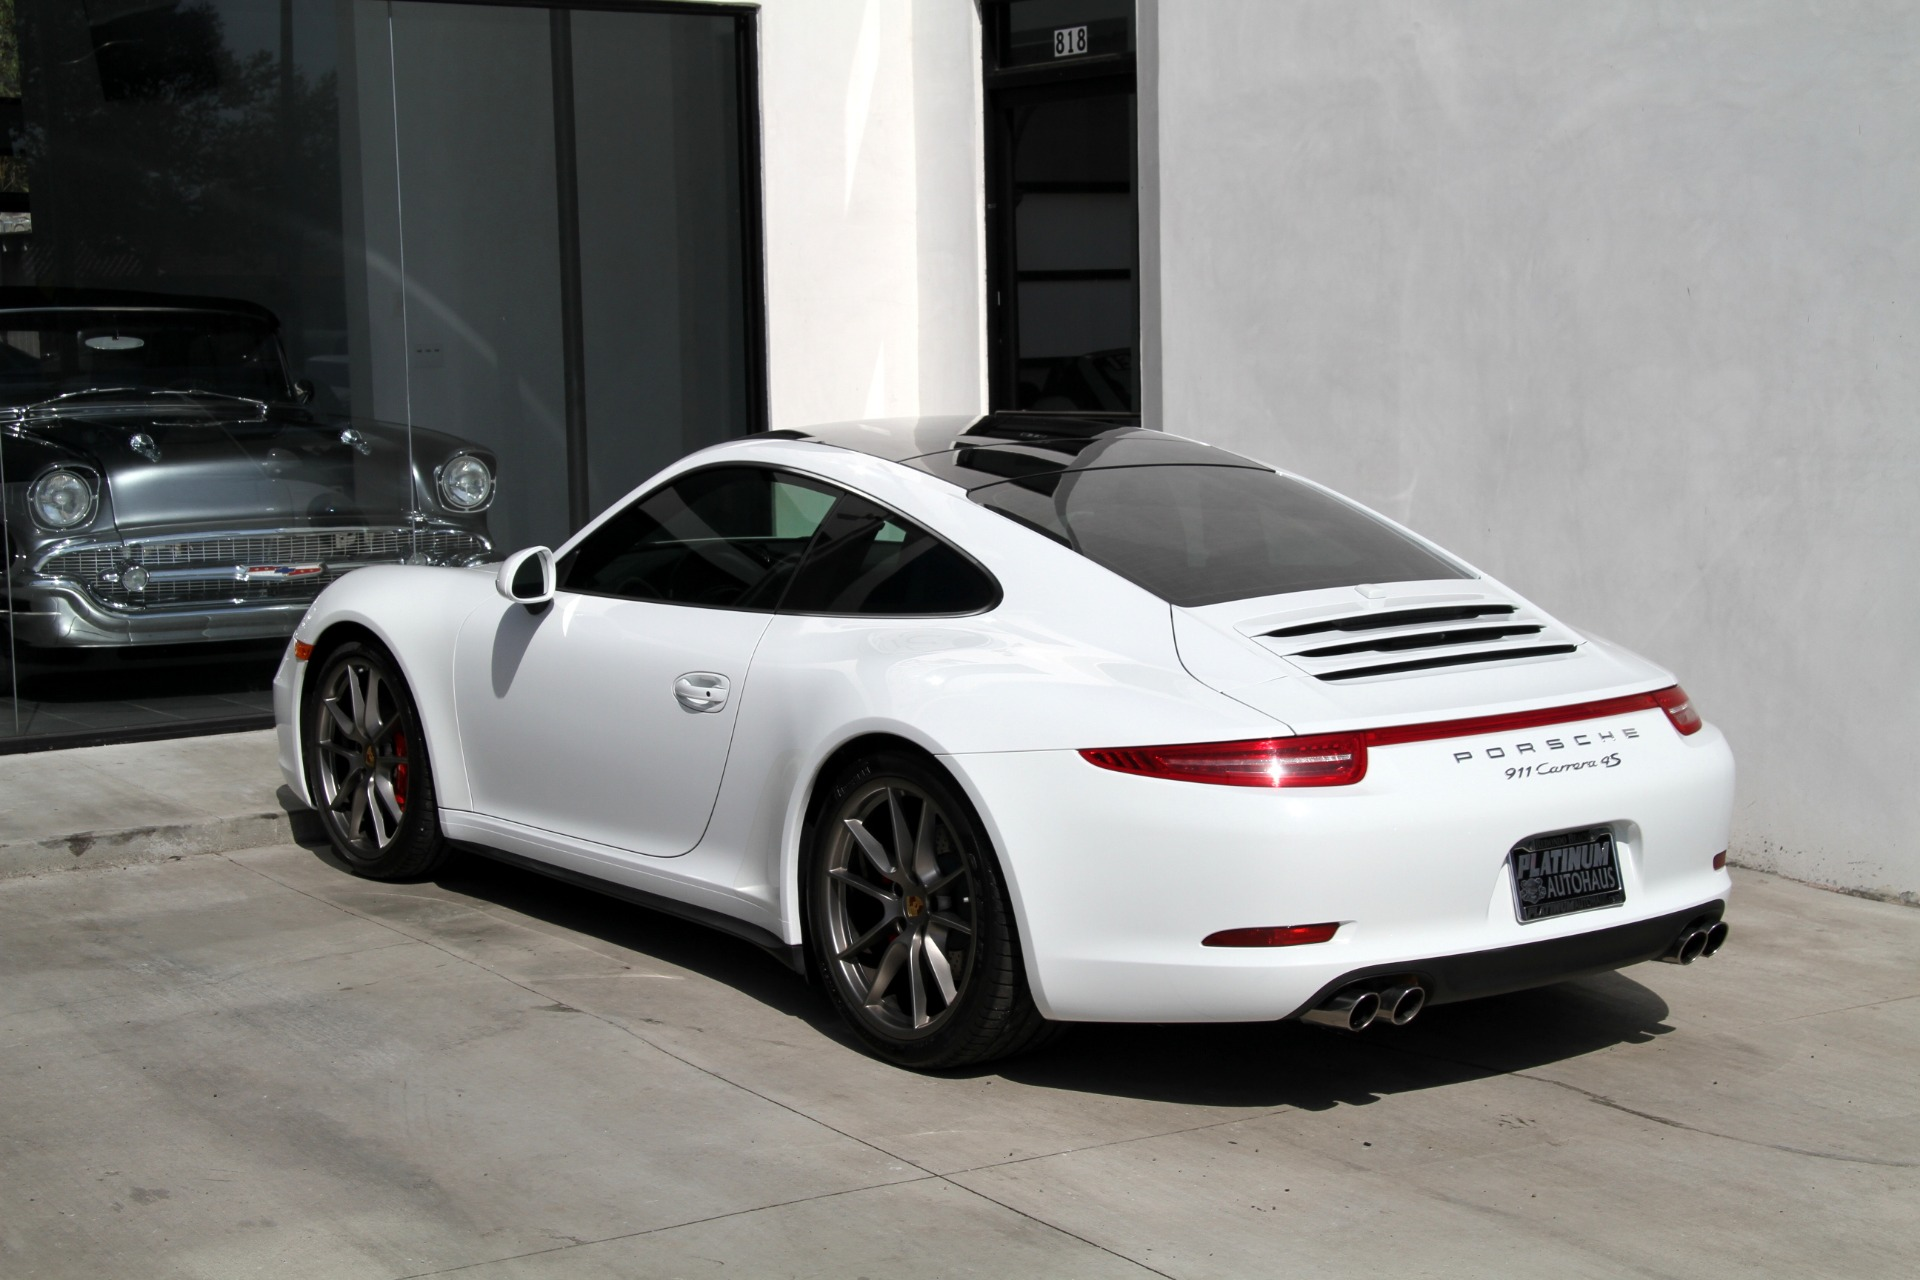 2016 porsche 911 carrera 4s only 7k miles stock 6283 for sale near redondo beach ca. Black Bedroom Furniture Sets. Home Design Ideas